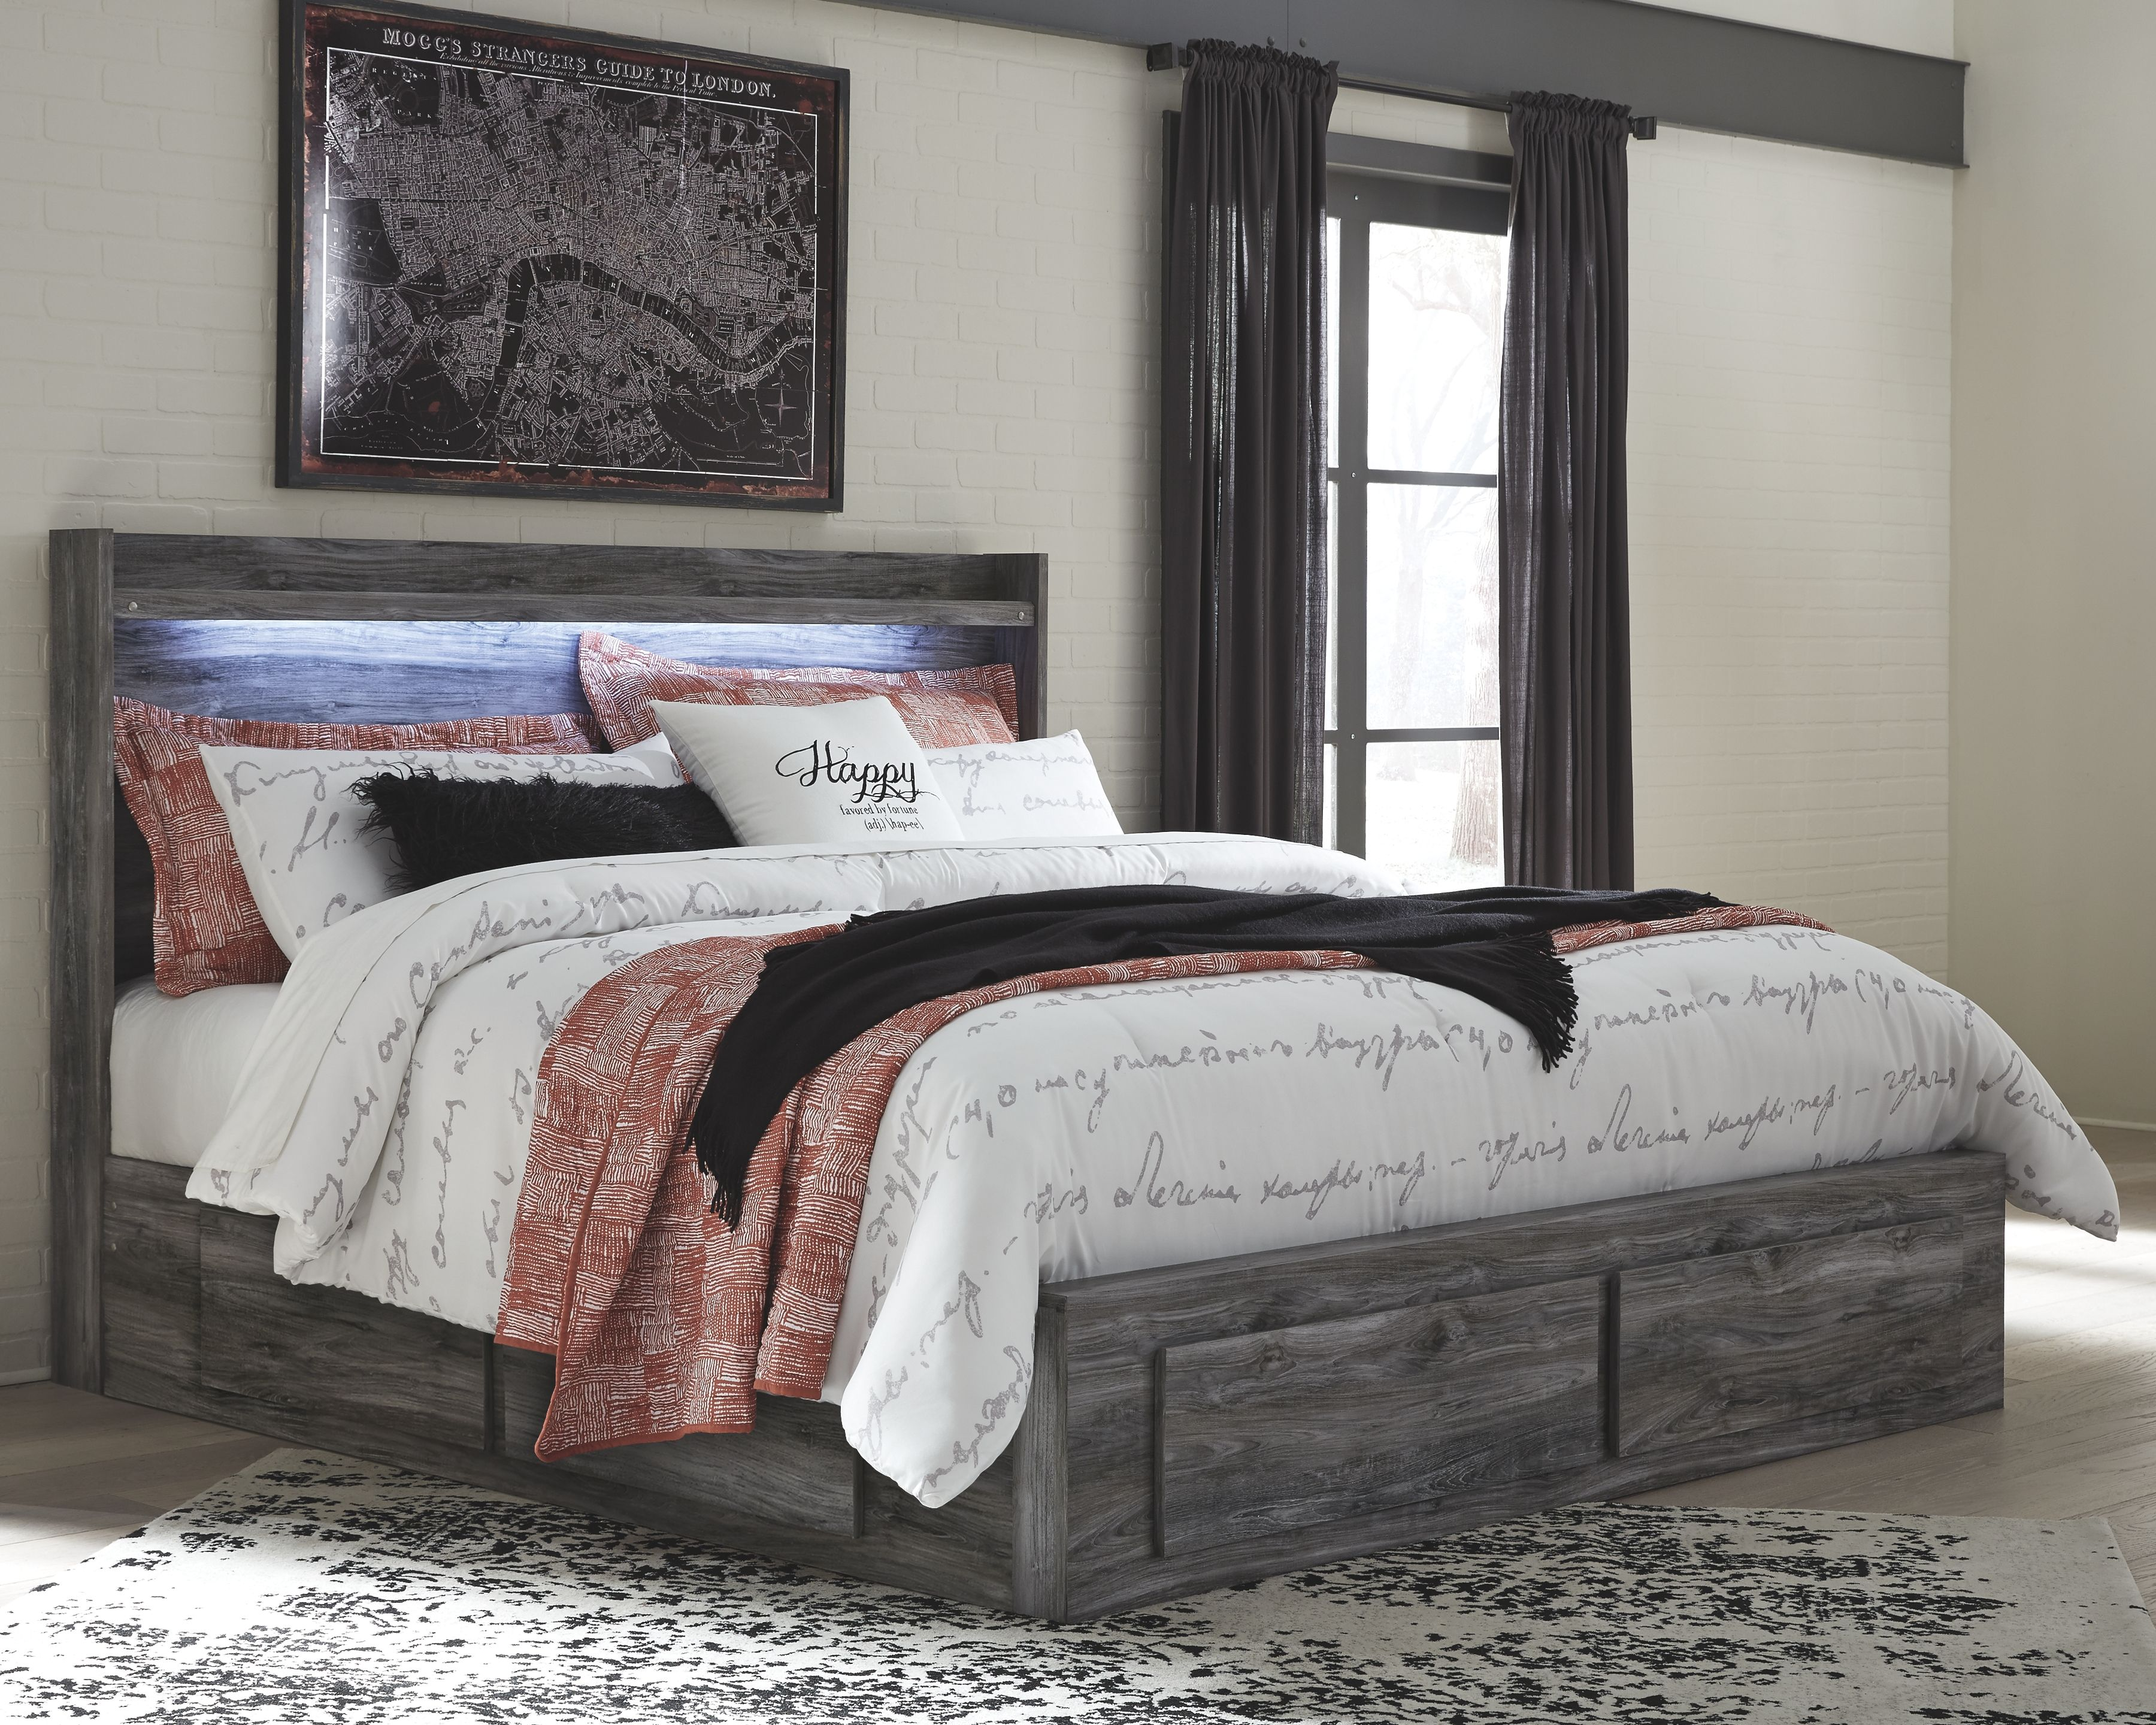 Baystorm King Panel Bed with 6 Storage Drawers, Gray